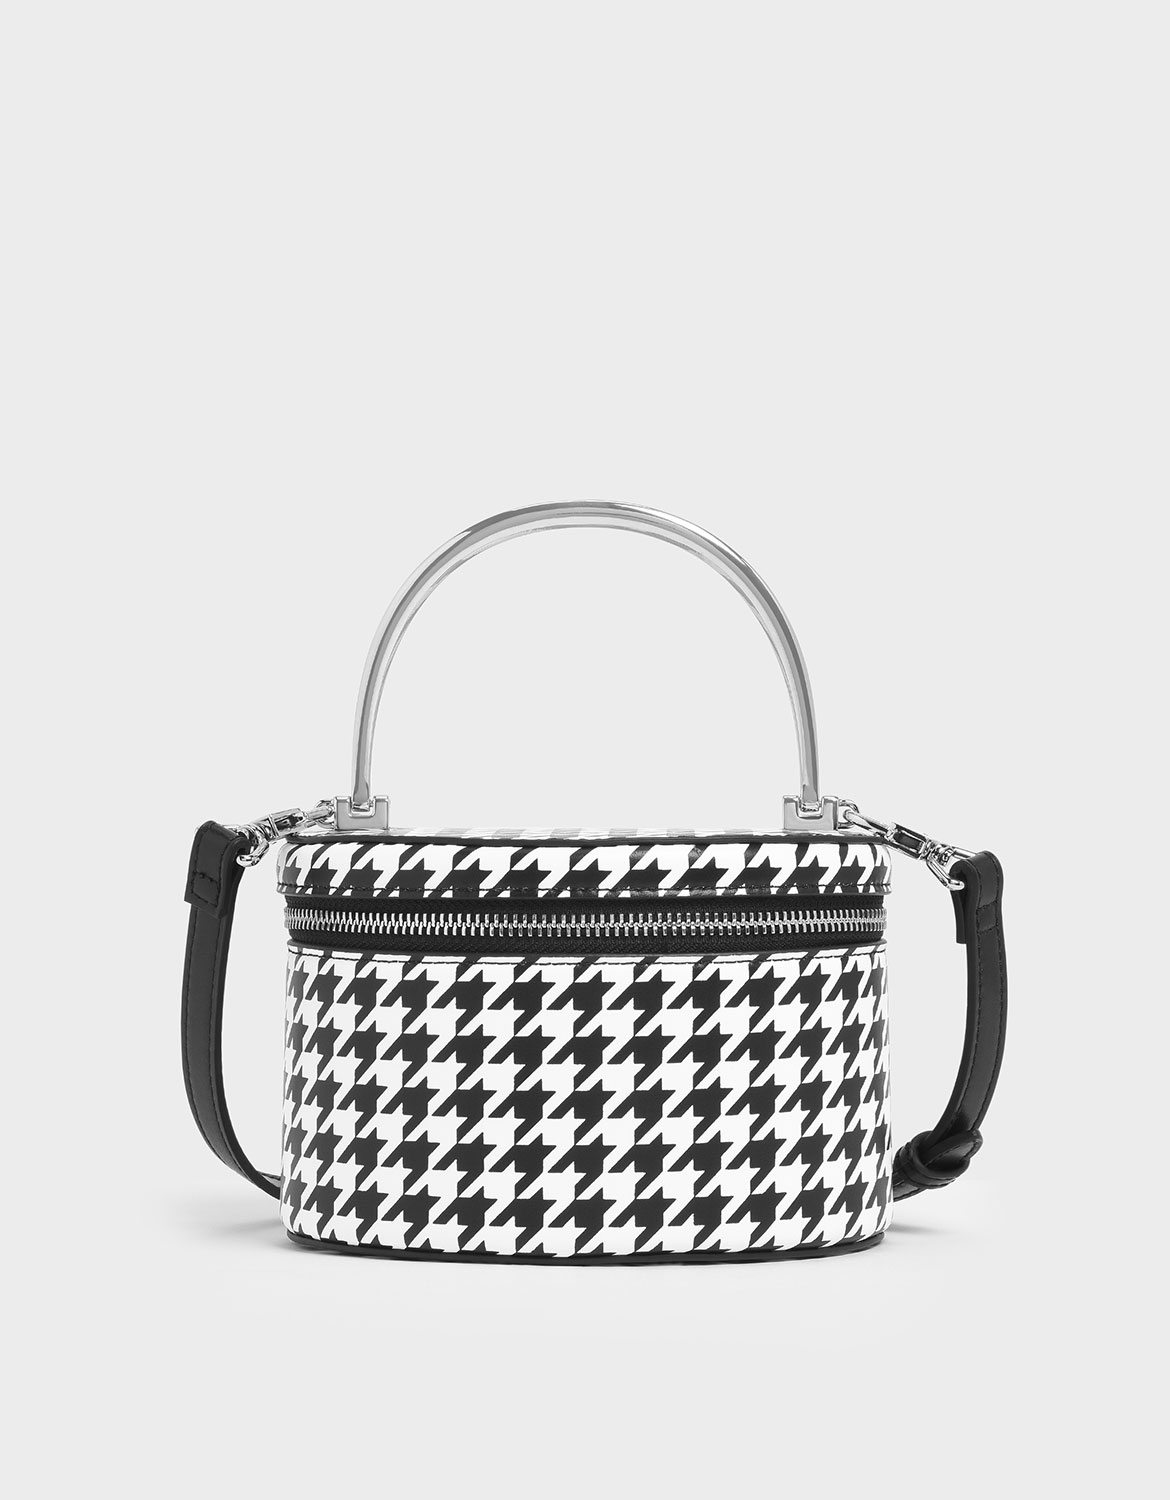 Women's Metal Top Handle Houndstooth Print Round Structured Bag - CHARLES & KEITH